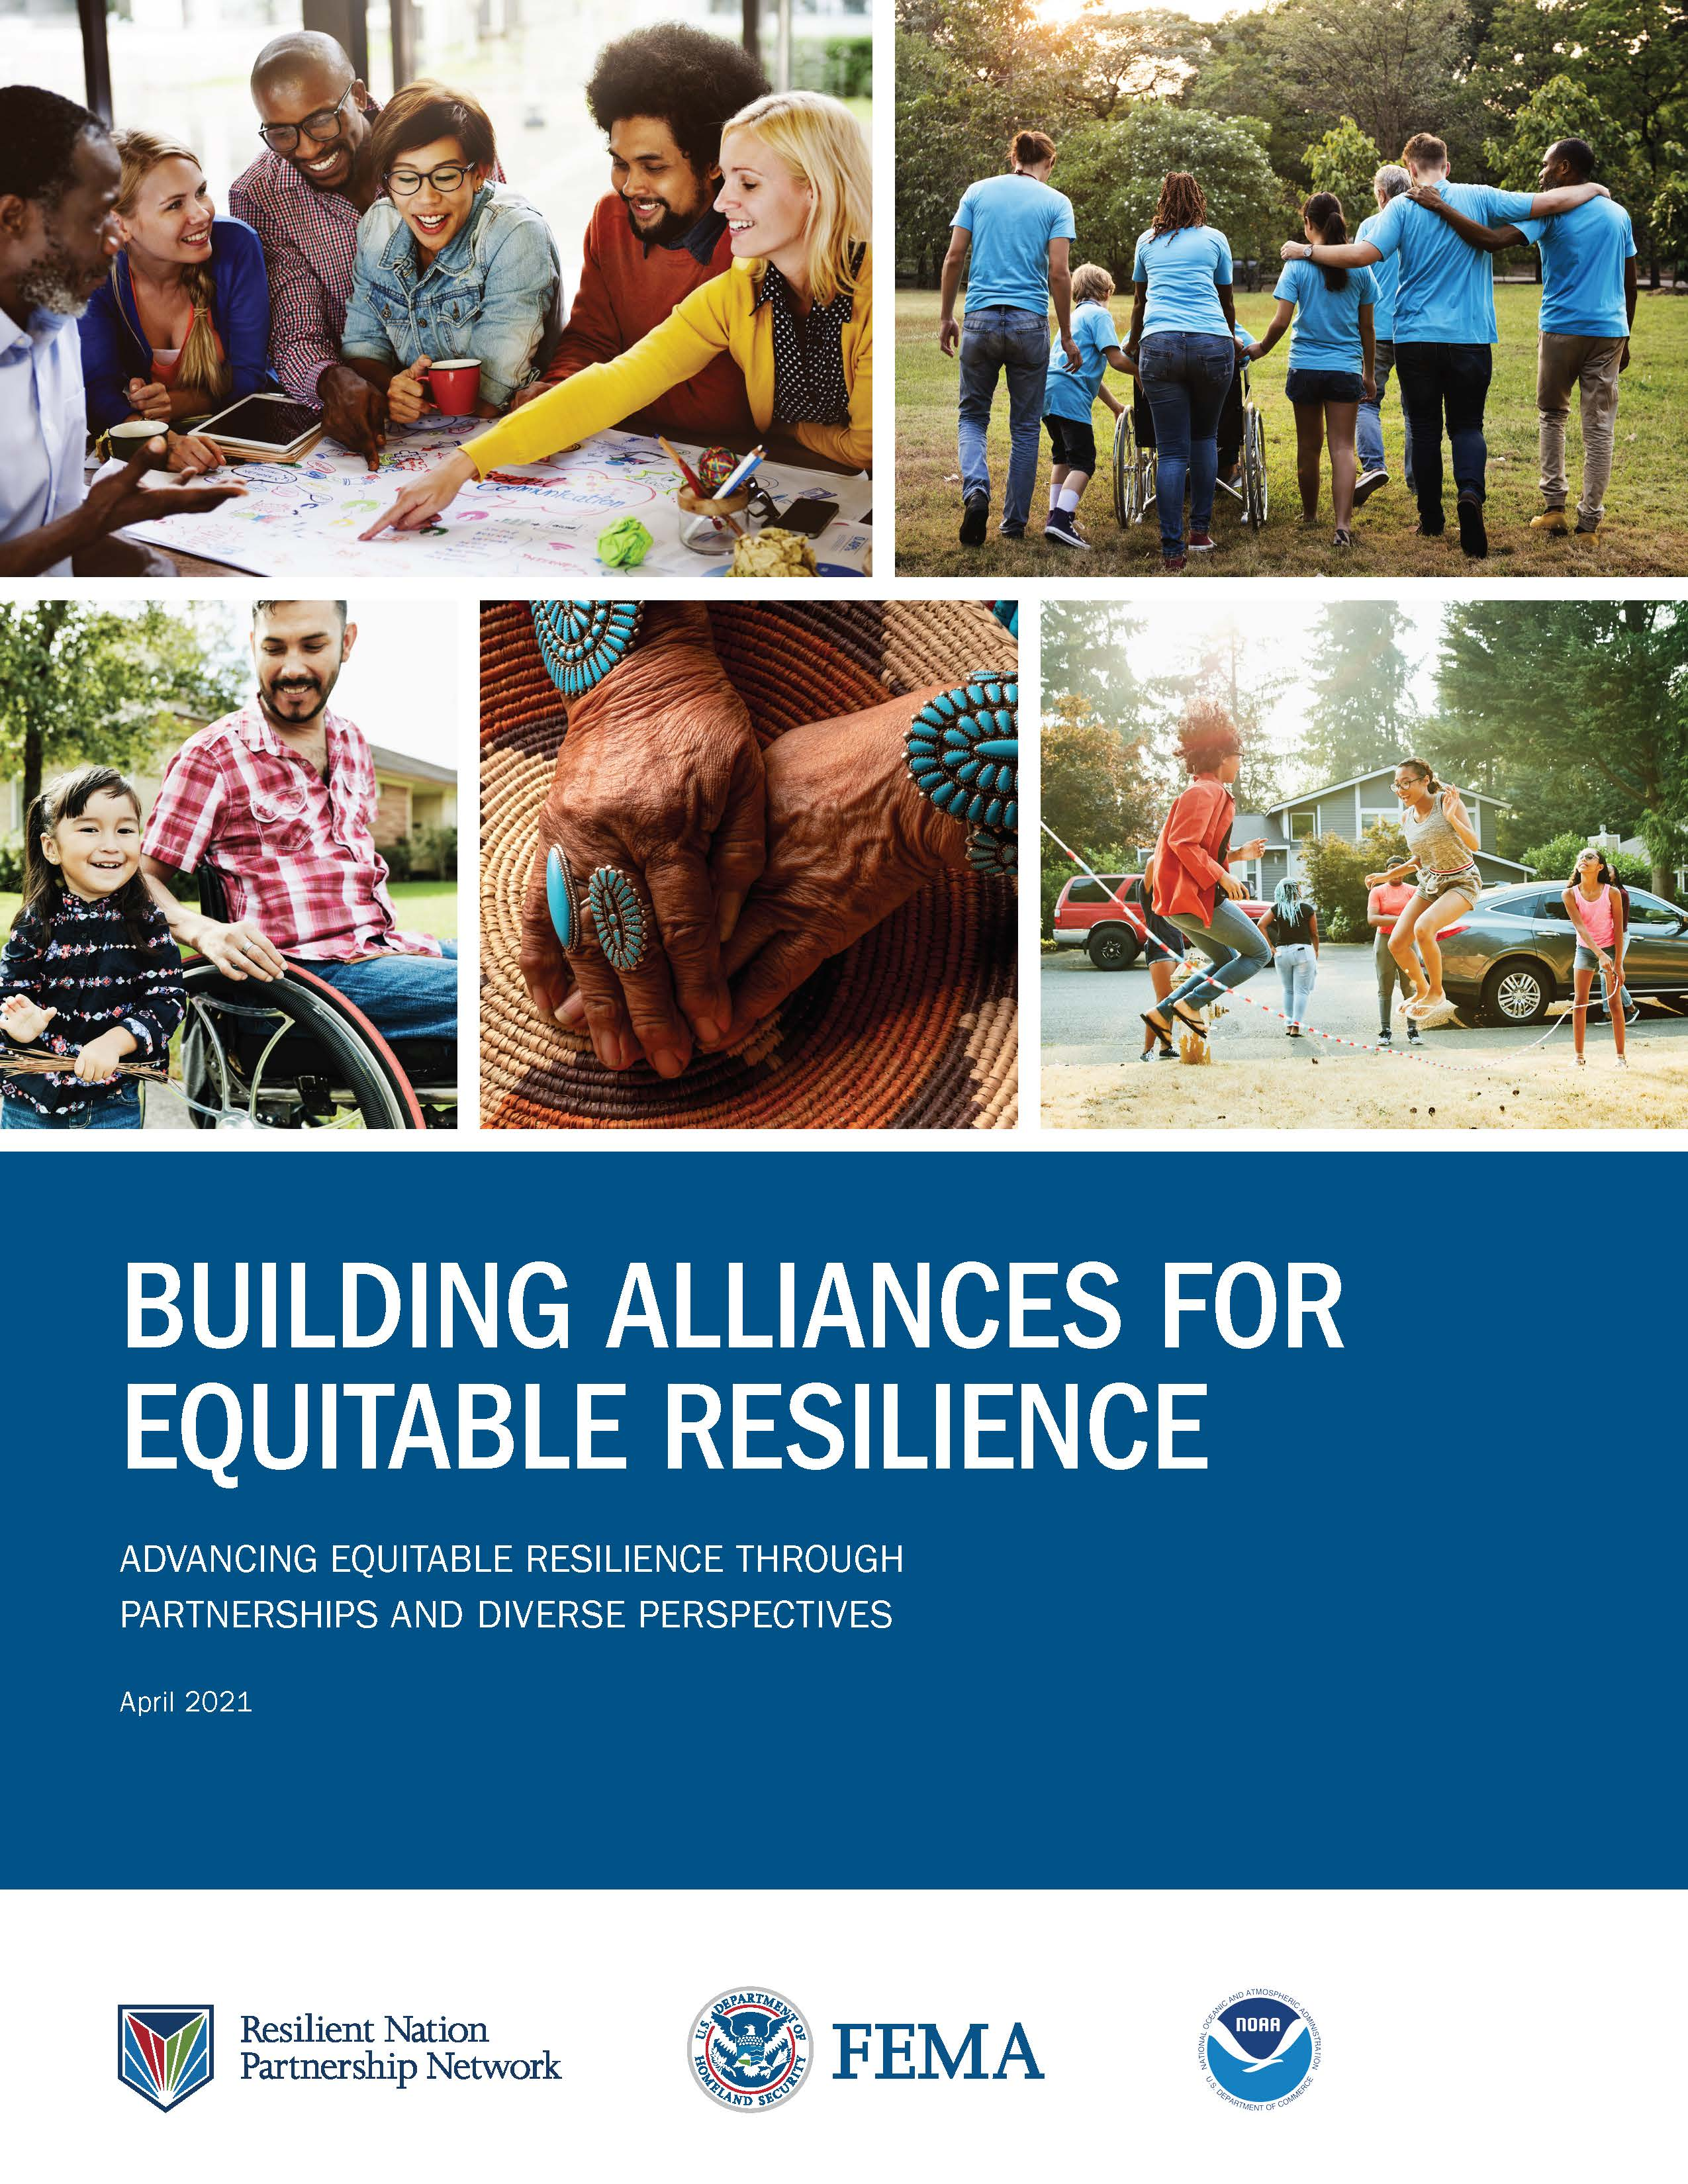 Building Alliances for Equitable Resilience frontpage.